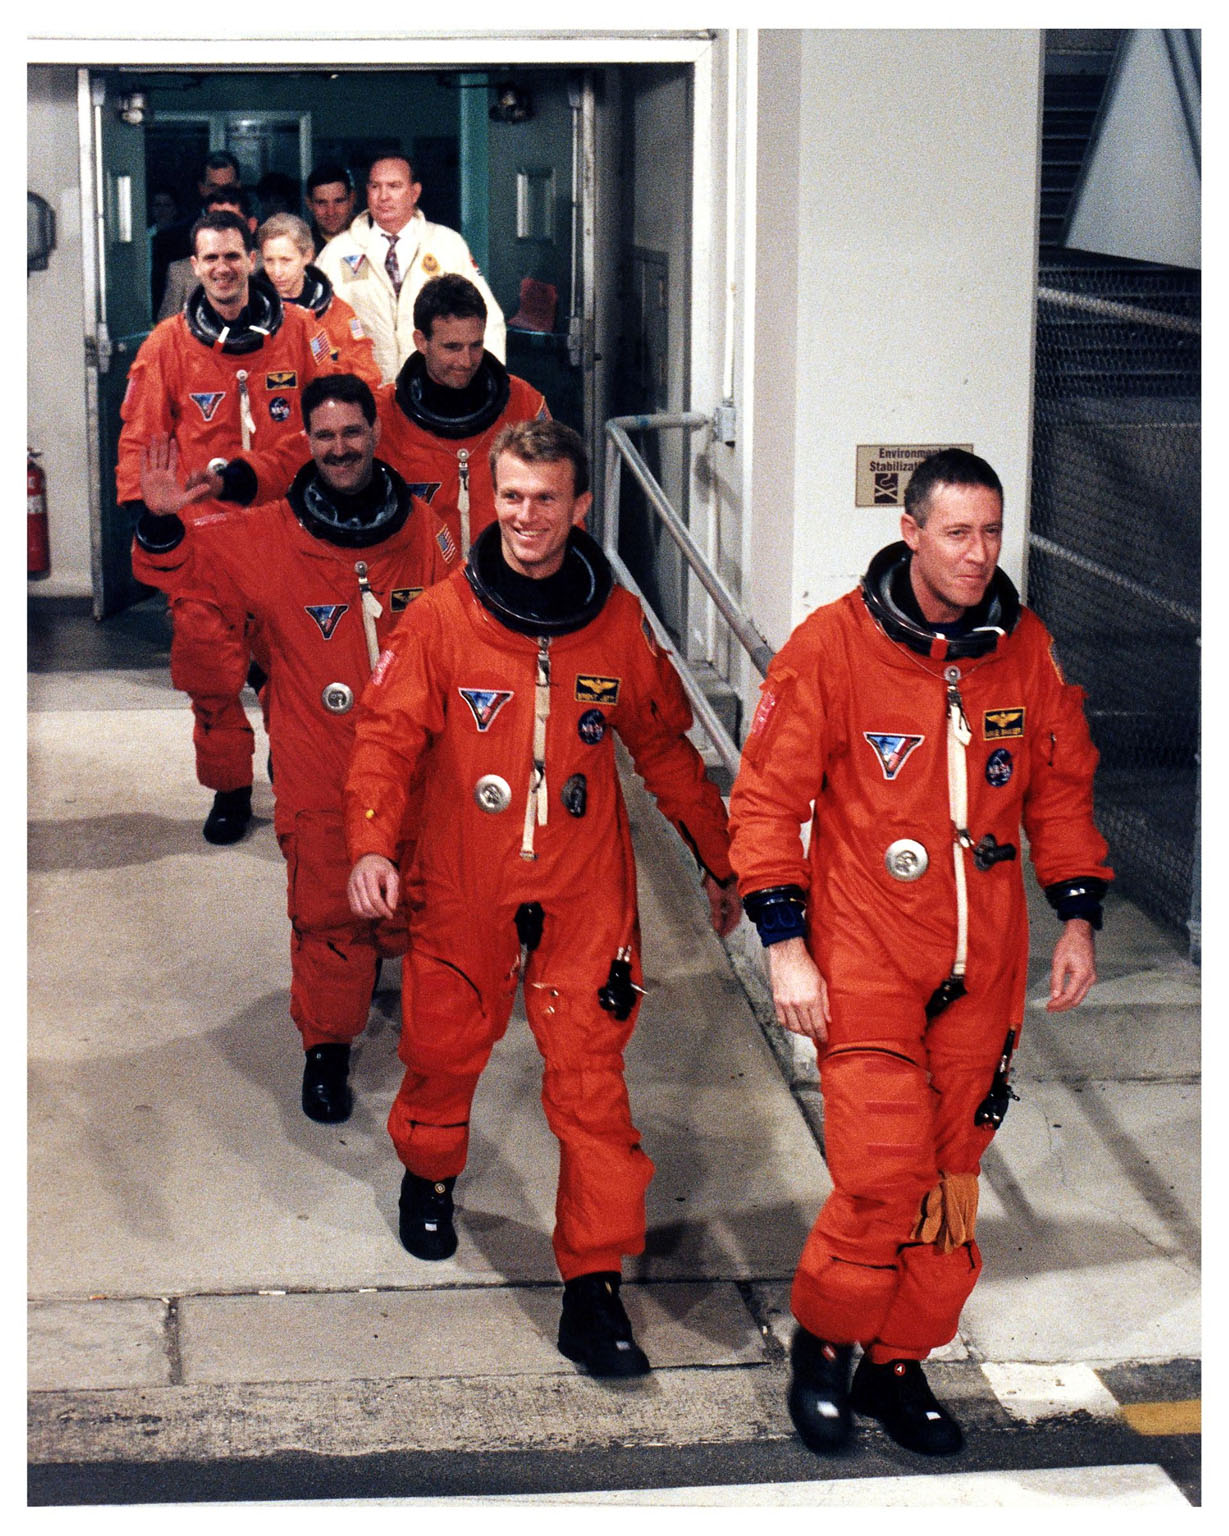 """Greeted by cheers from wellwishers at KSC and eager for their venture into space on the fifth Shuttle-Mir docking mission, the STS-81 astronauts depart the Operations and Checkout Building on their way to Launch Pad 39B. Leading the six-member crew is Mission Commander Michael A. Baker, followed by Pilot Brent W. Jett, Jr. Behind them are Mission Specialists John M. Grunsfeld, Jerry Linenger, Peter J. K. """"Jeff"""" Wisoff, and Marsha S. Ivins. Their trip to the pad will take about 25 minutes aboard the Astrovan. Once there, they will take their positions in the crew cabin of the Space Shuttle Atlantis to await a liftoff during a seven-minute window that will open at 4:27 a.m. EST, January 12"""